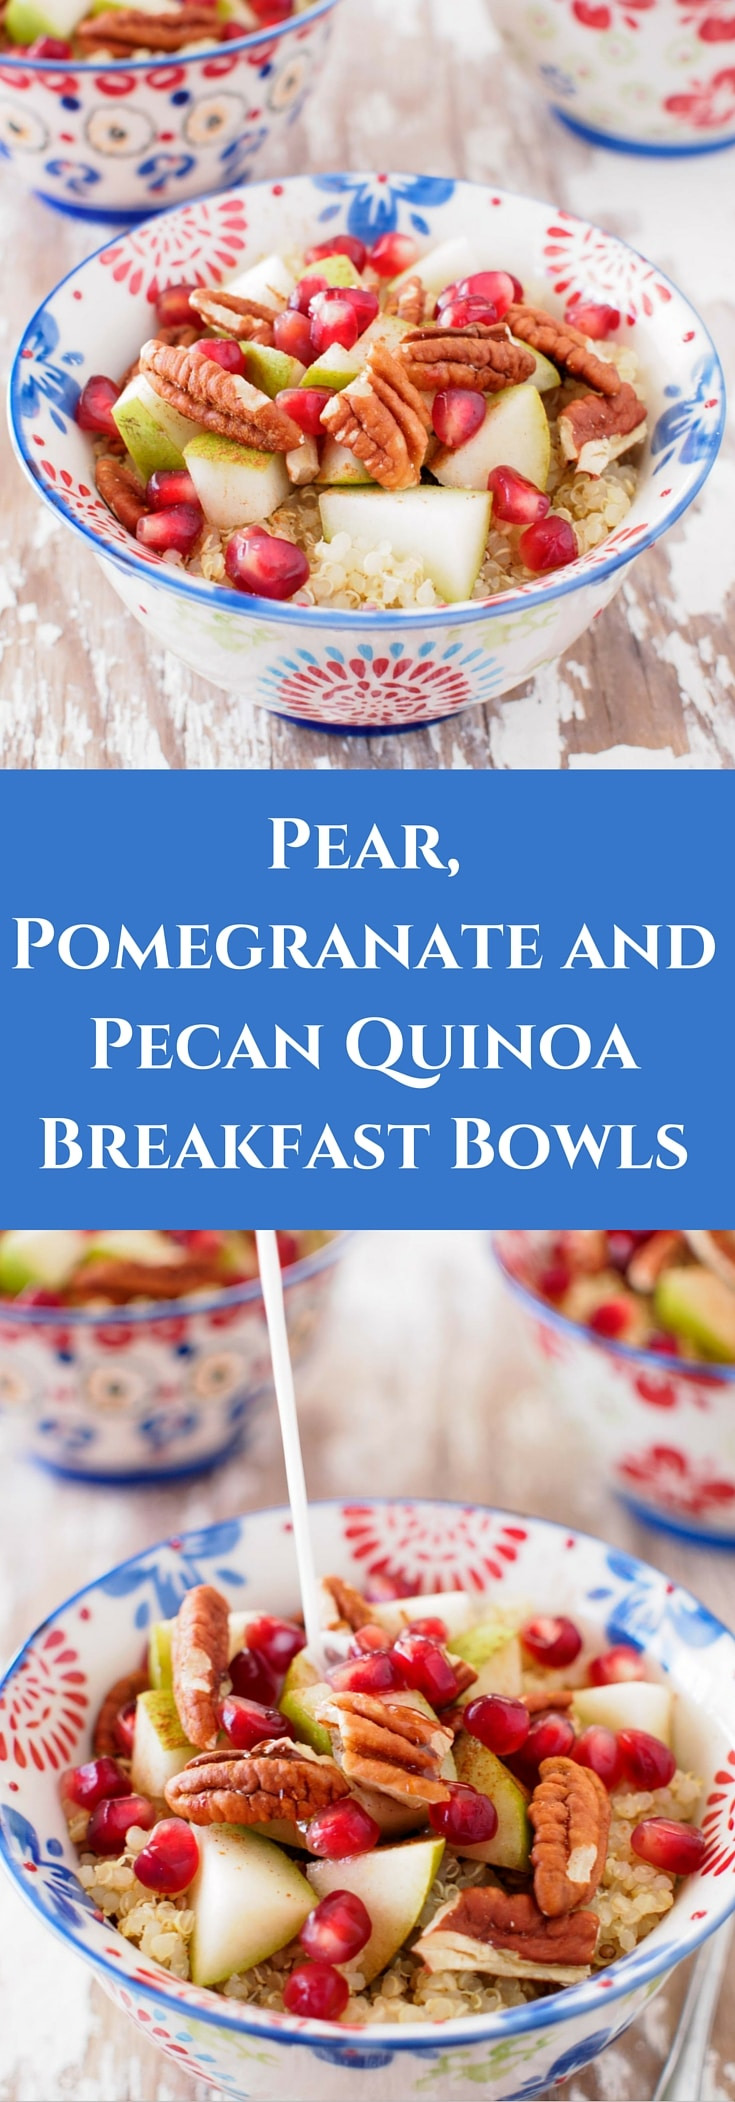 Looking for a delicious, filling and healthy breakfast? Try this incredibly tasty and healthy Pear, Pomegranate and Pecan Quinoa Breakfast Bowl.